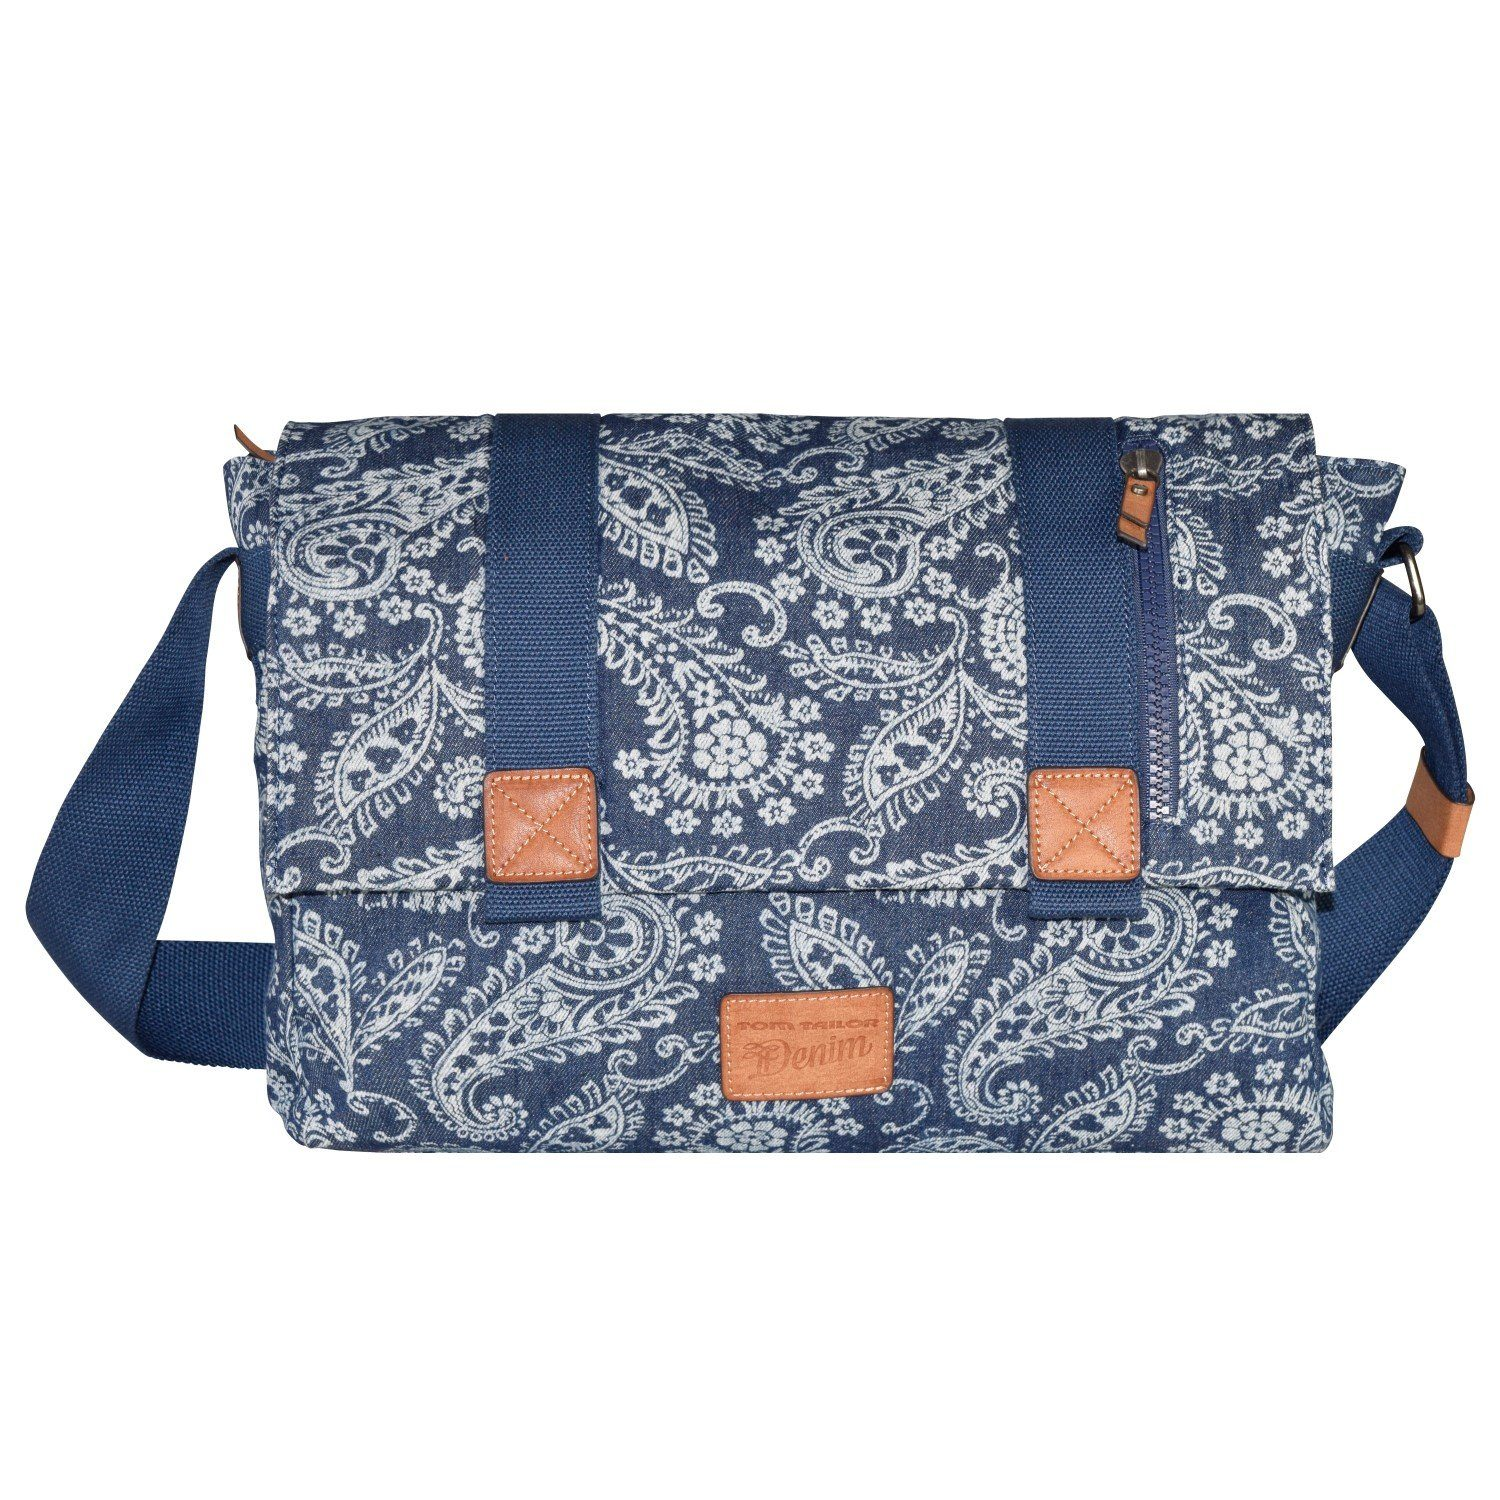 Tom Tailor Denim Madison Messenger Tasche 41 cm